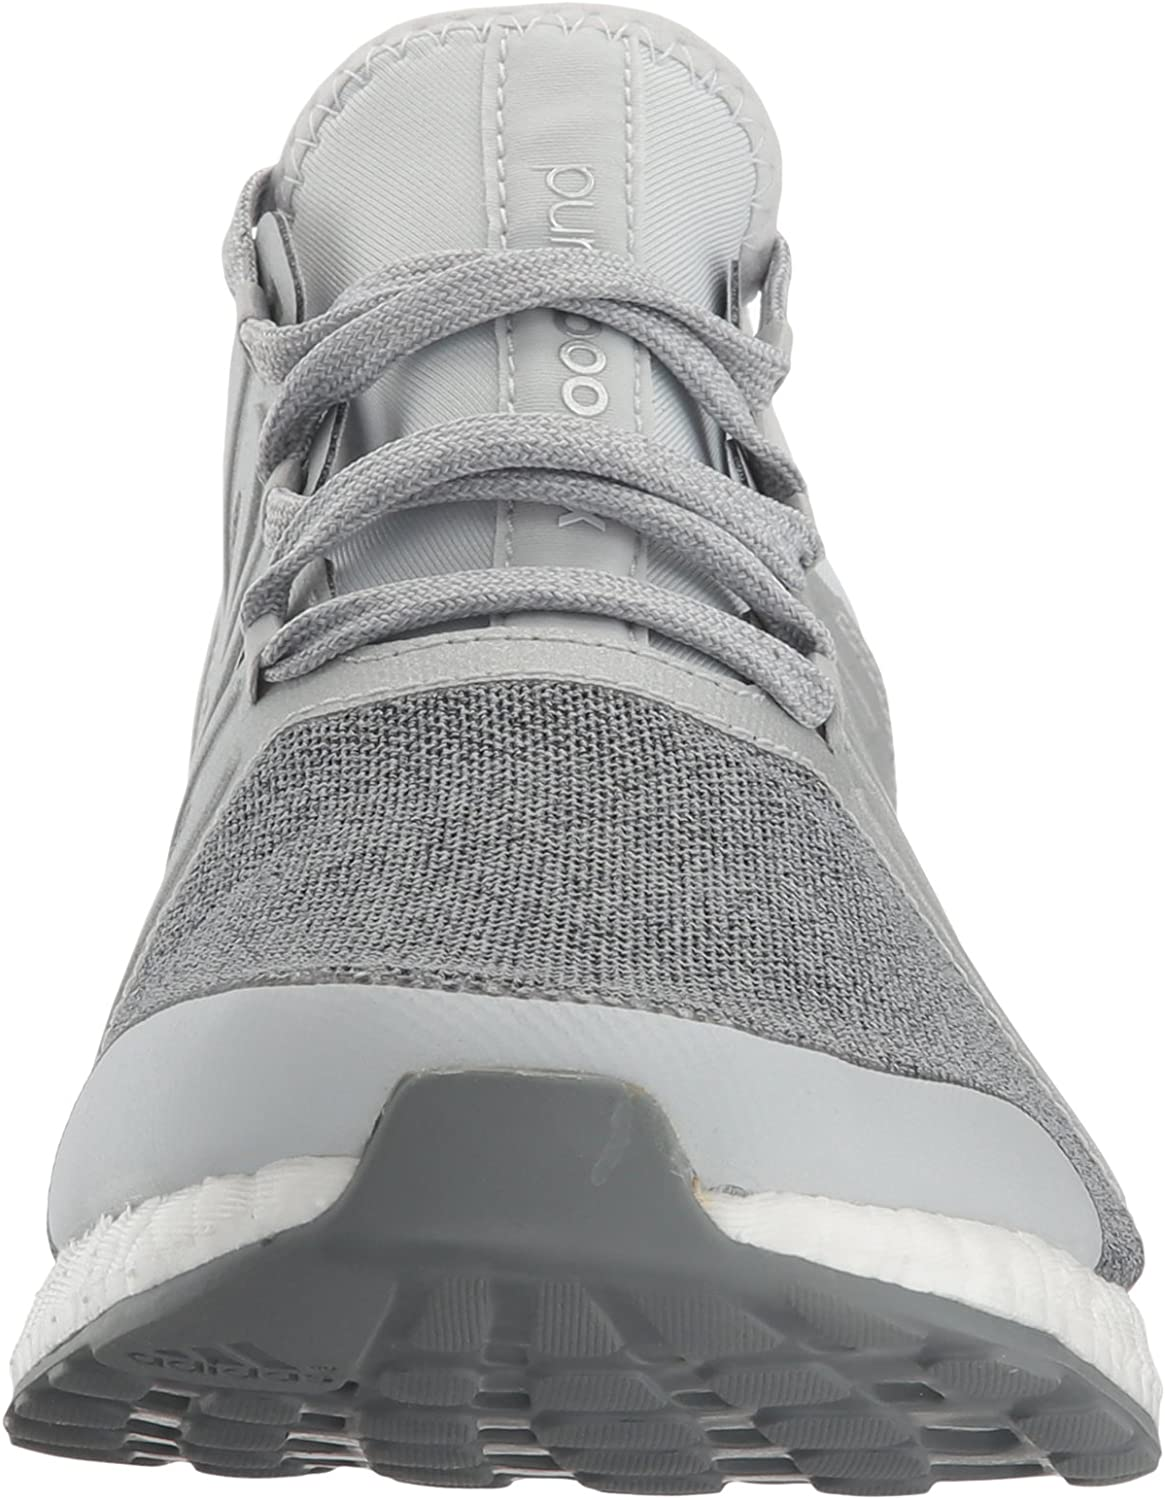 adidas Performance Women's Pureboost Xpose Running Shoe Clear/Grey/Metallic/Silver/Mid Grey